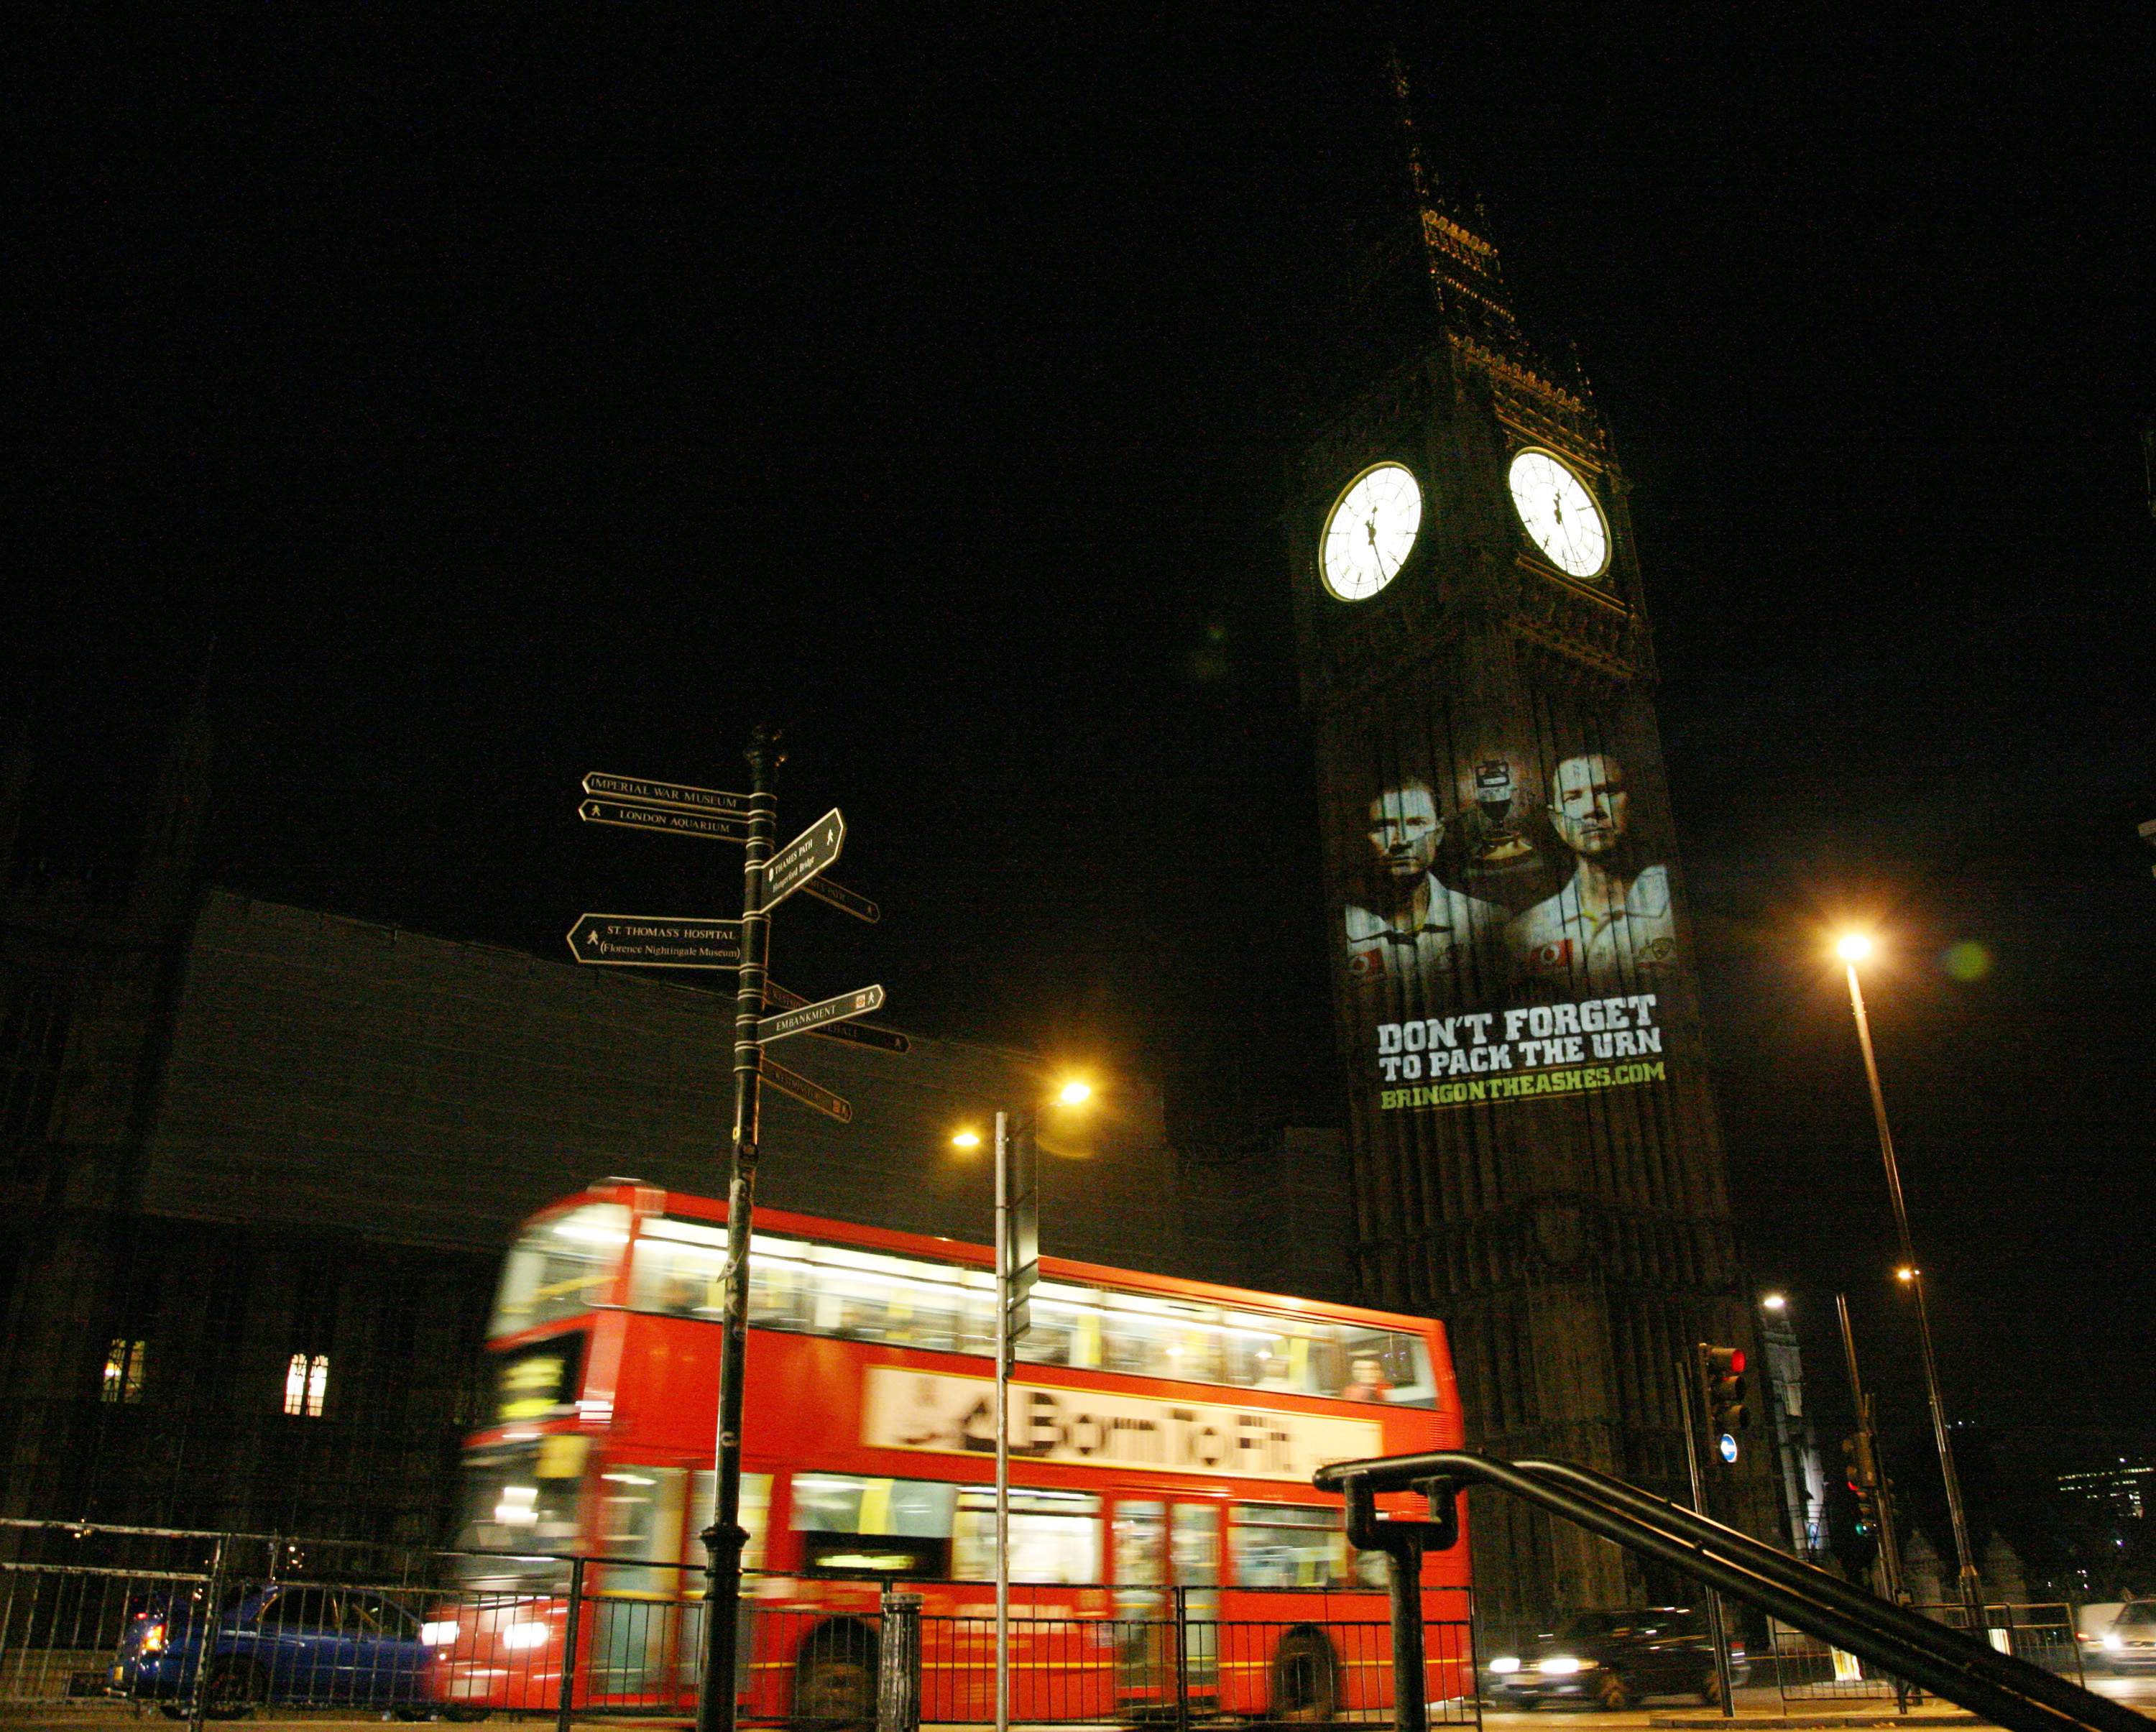 LONDON, ENGLAND - OCTOBER 28: In this handout photo provided by Cricket Australia an image of Australian Test cricket captain Ricky Ponting and Vice Captain Michael Clarke is projected onto the Big Ben clock tower at the Palace of Westminster on October 2